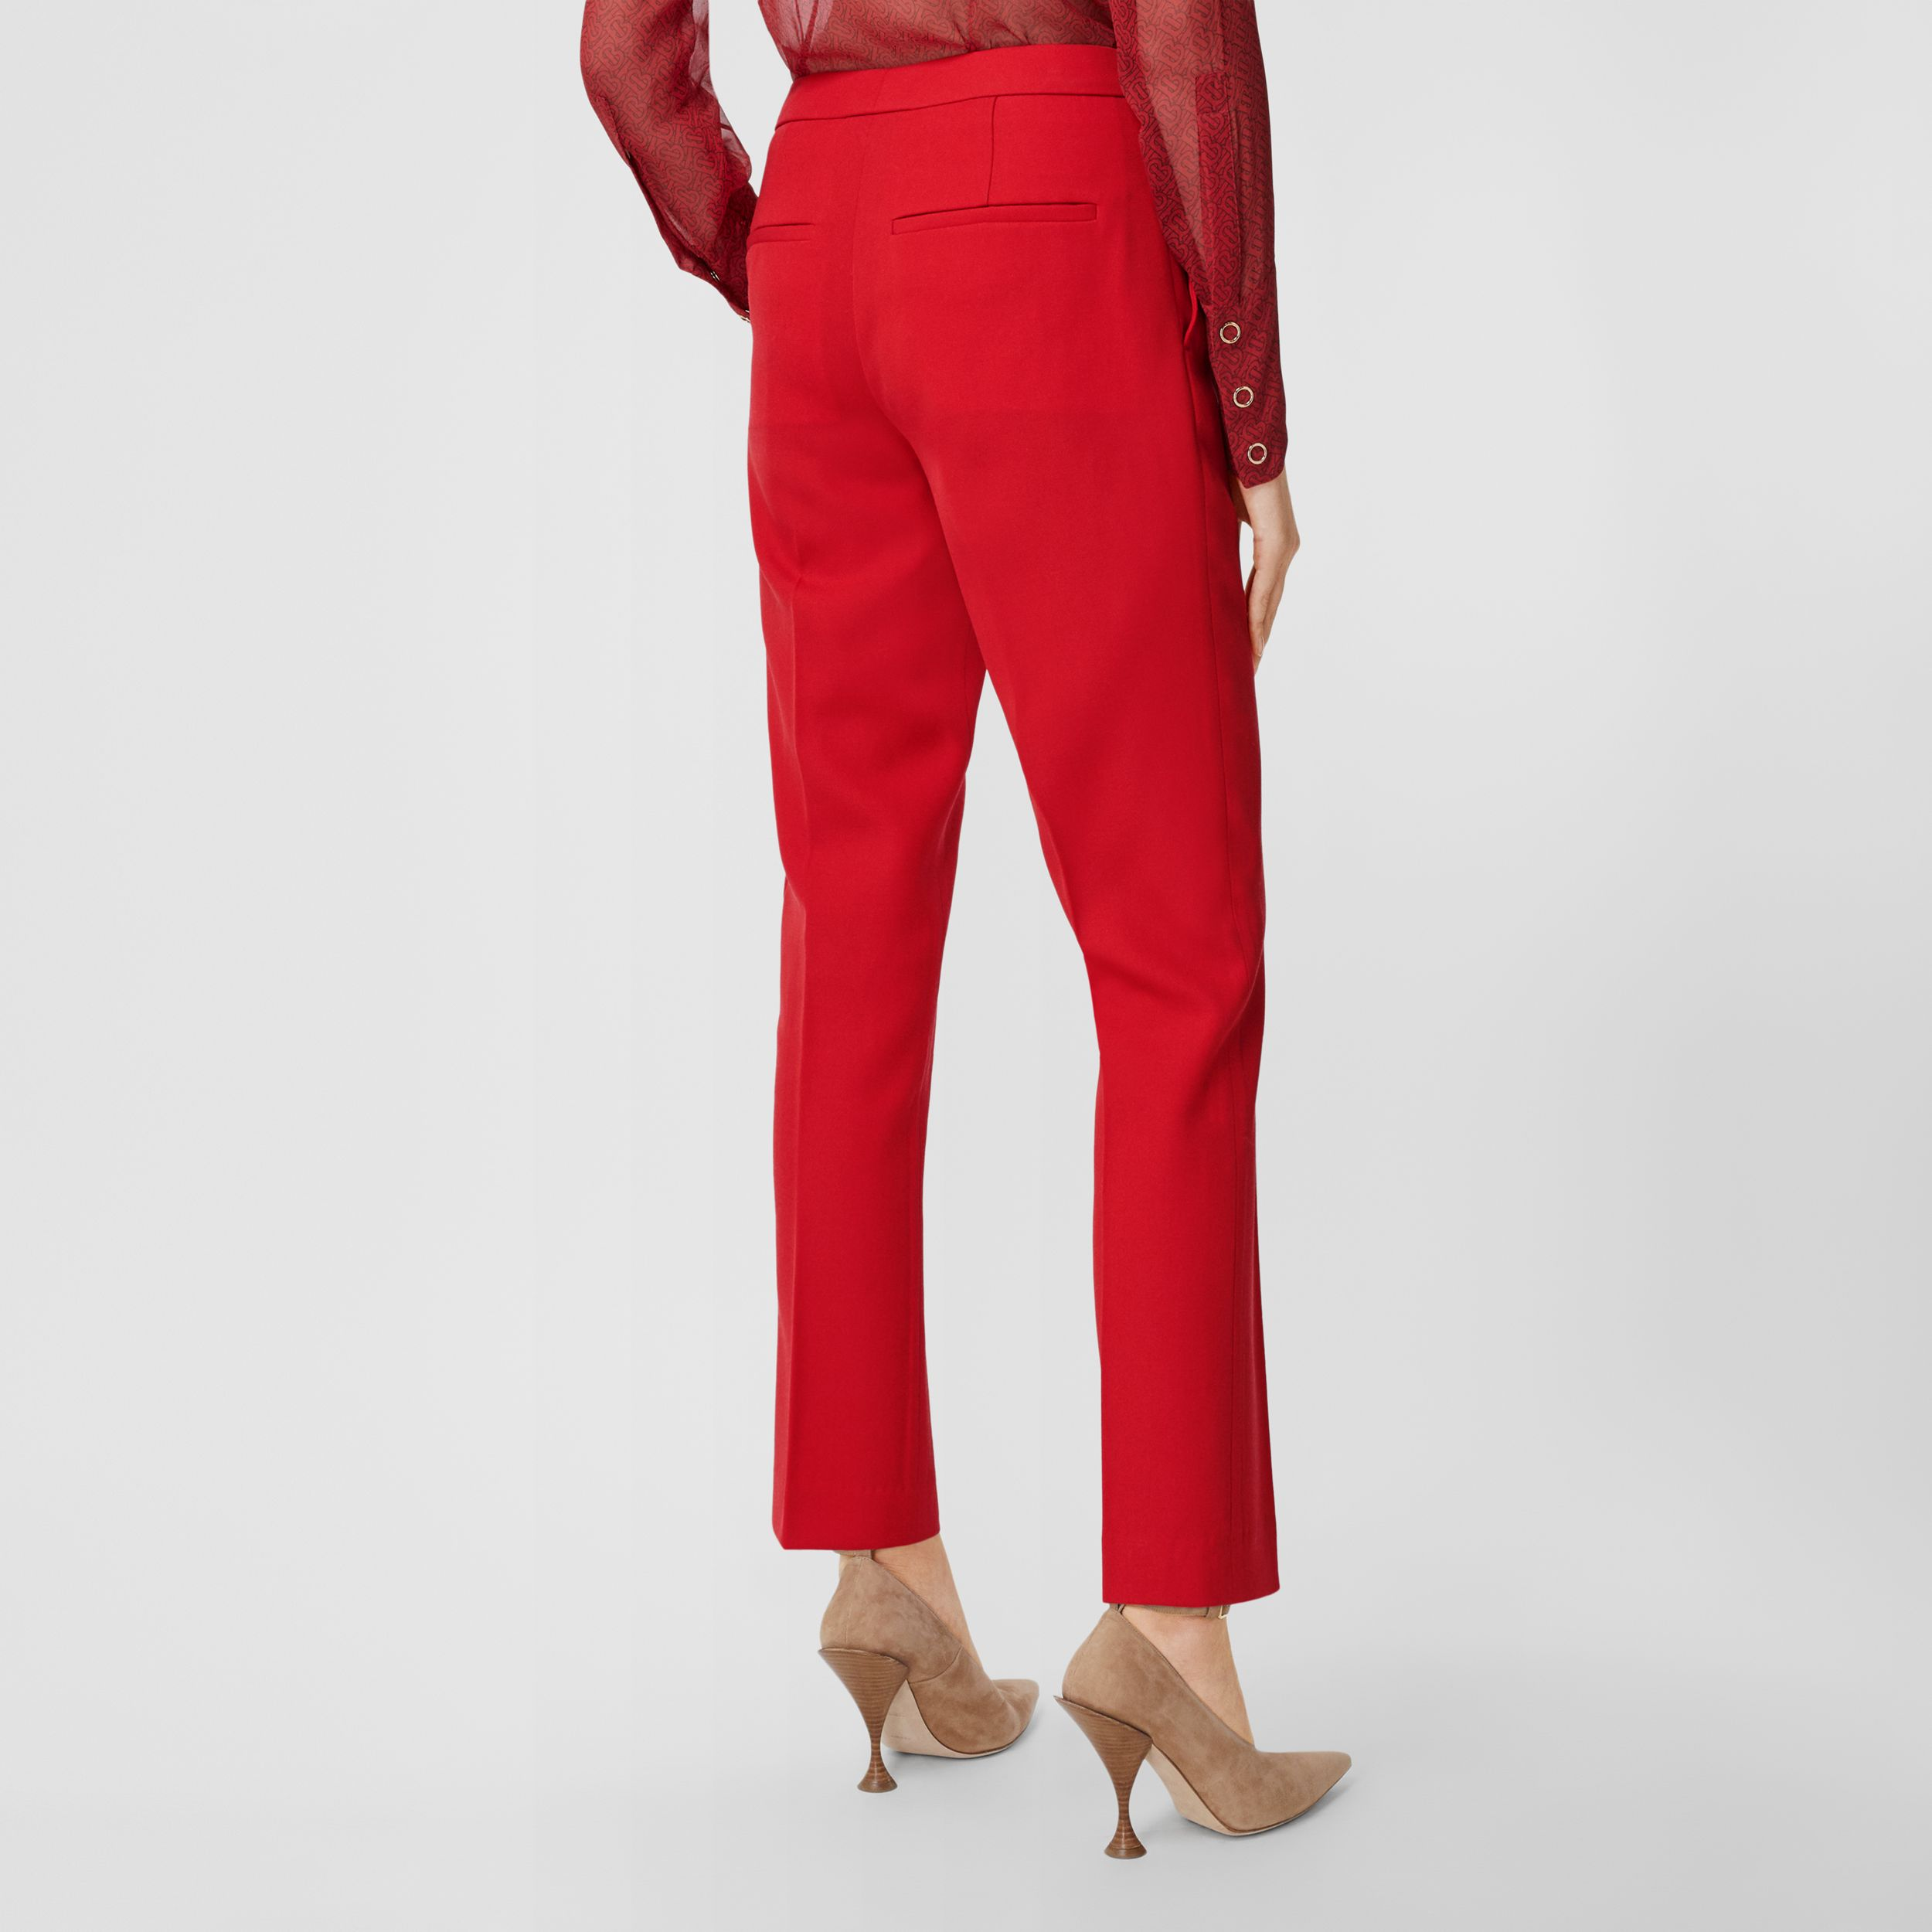 Wool Tailored Trousers in Bright Red - Women | Burberry - 3